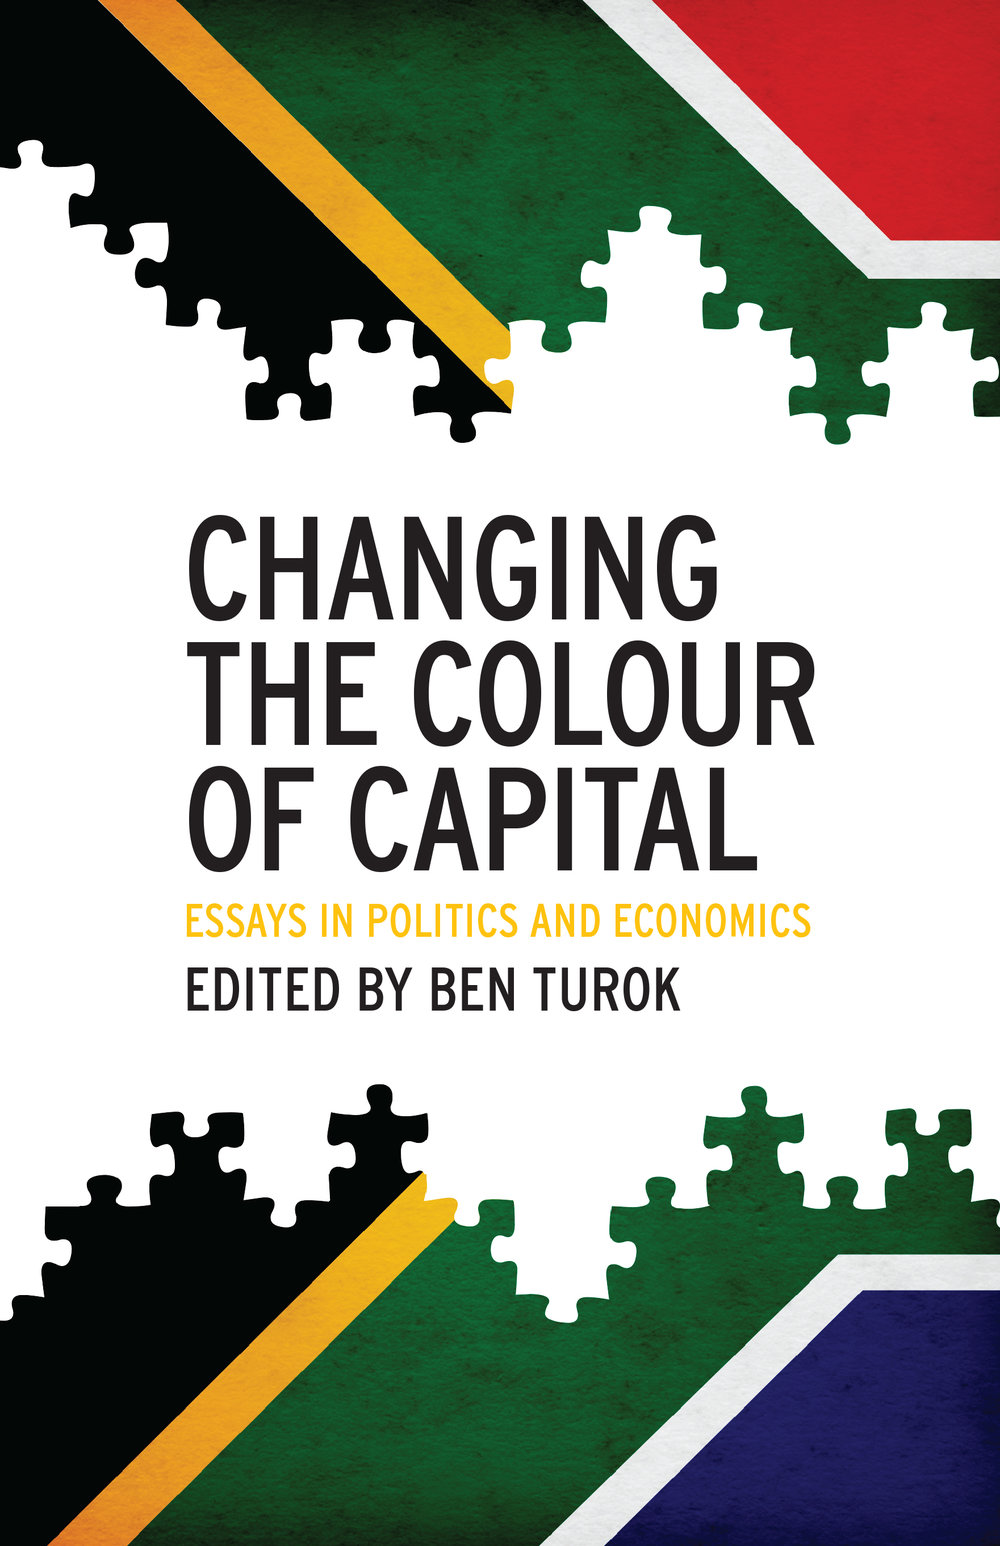 Changing the Colour of Capital  - Ben Turok (editor)